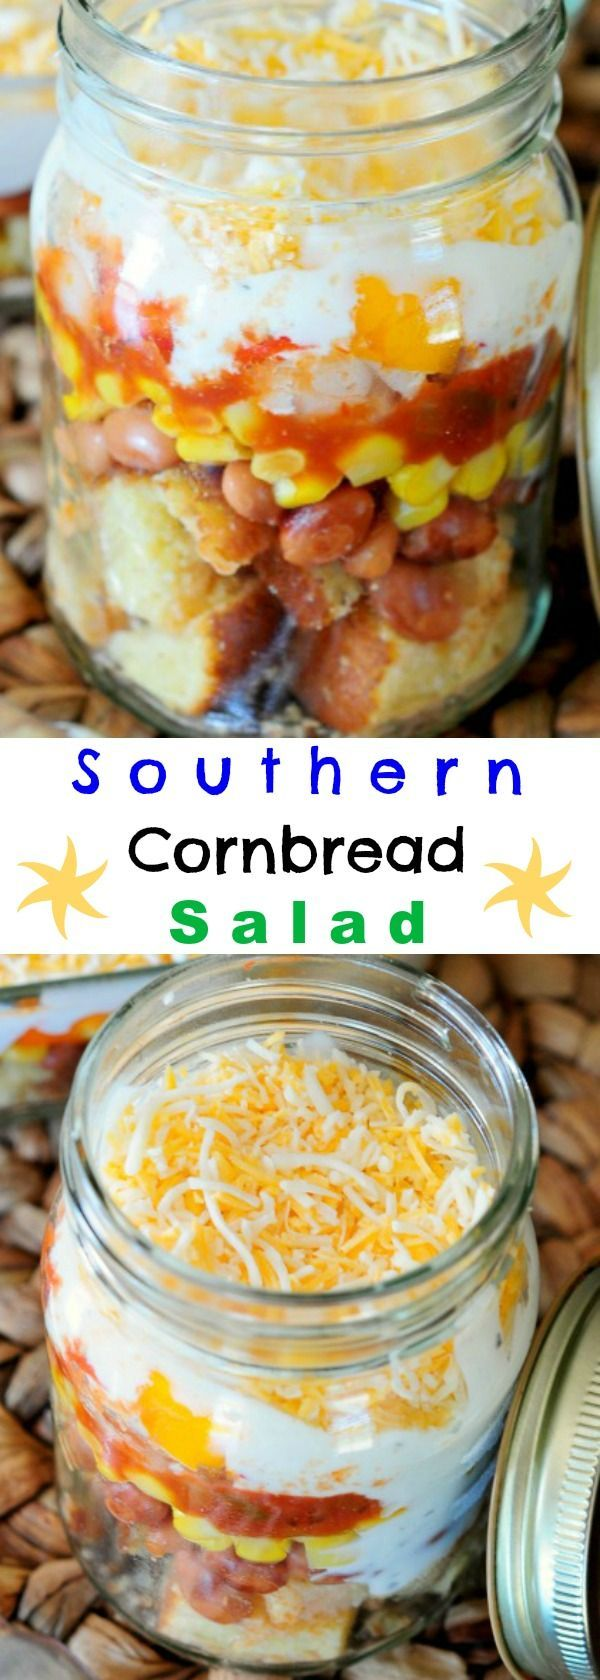 Incredible Southern Cornbread Salad - Everyone will BEG for the recipe!: